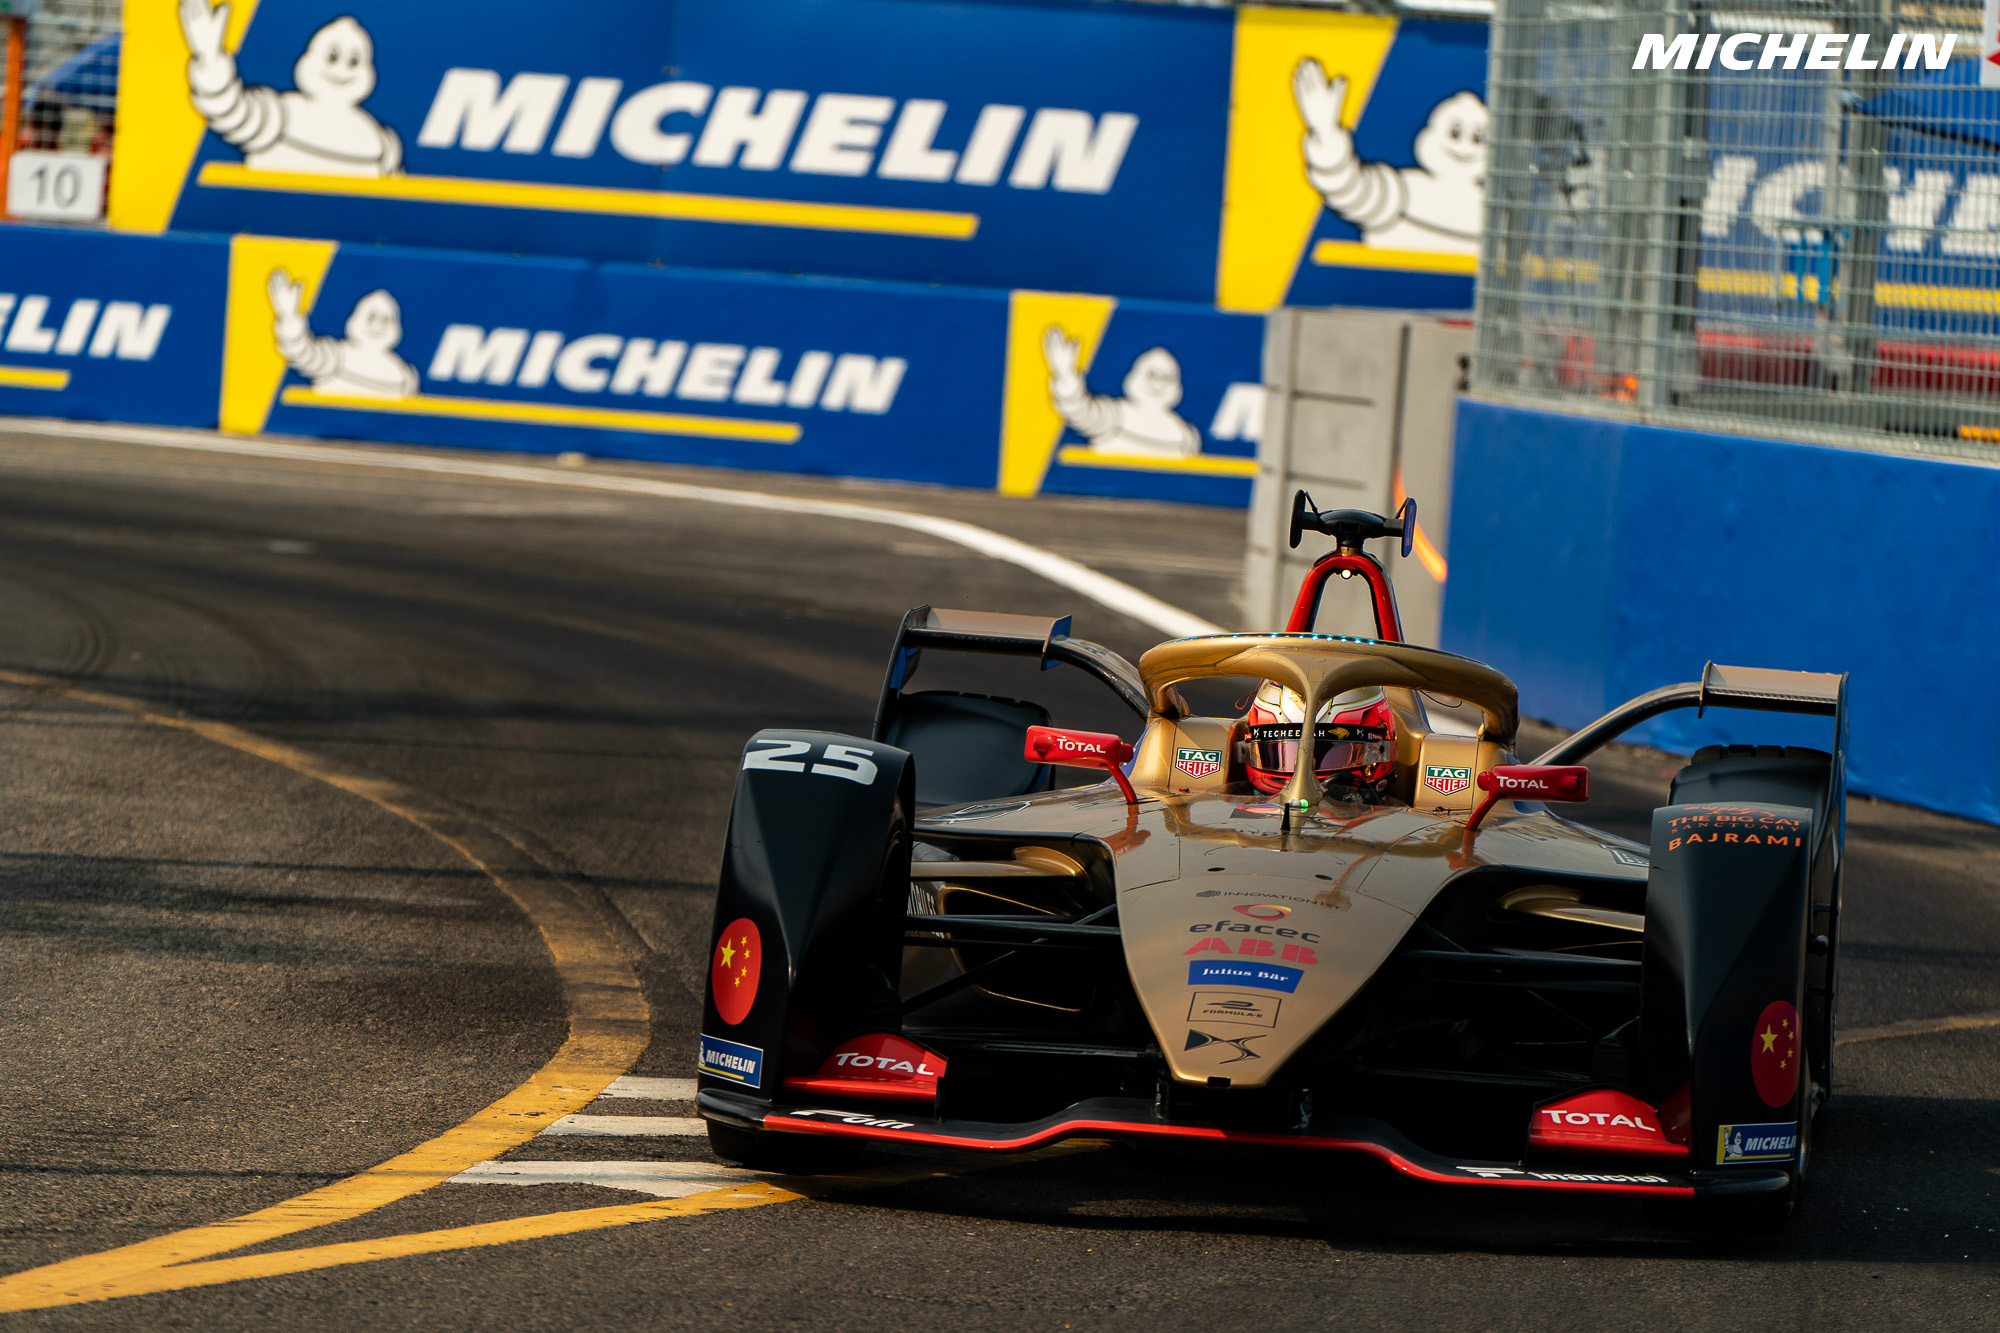 Jean-Eric Vergne returns to winning ways